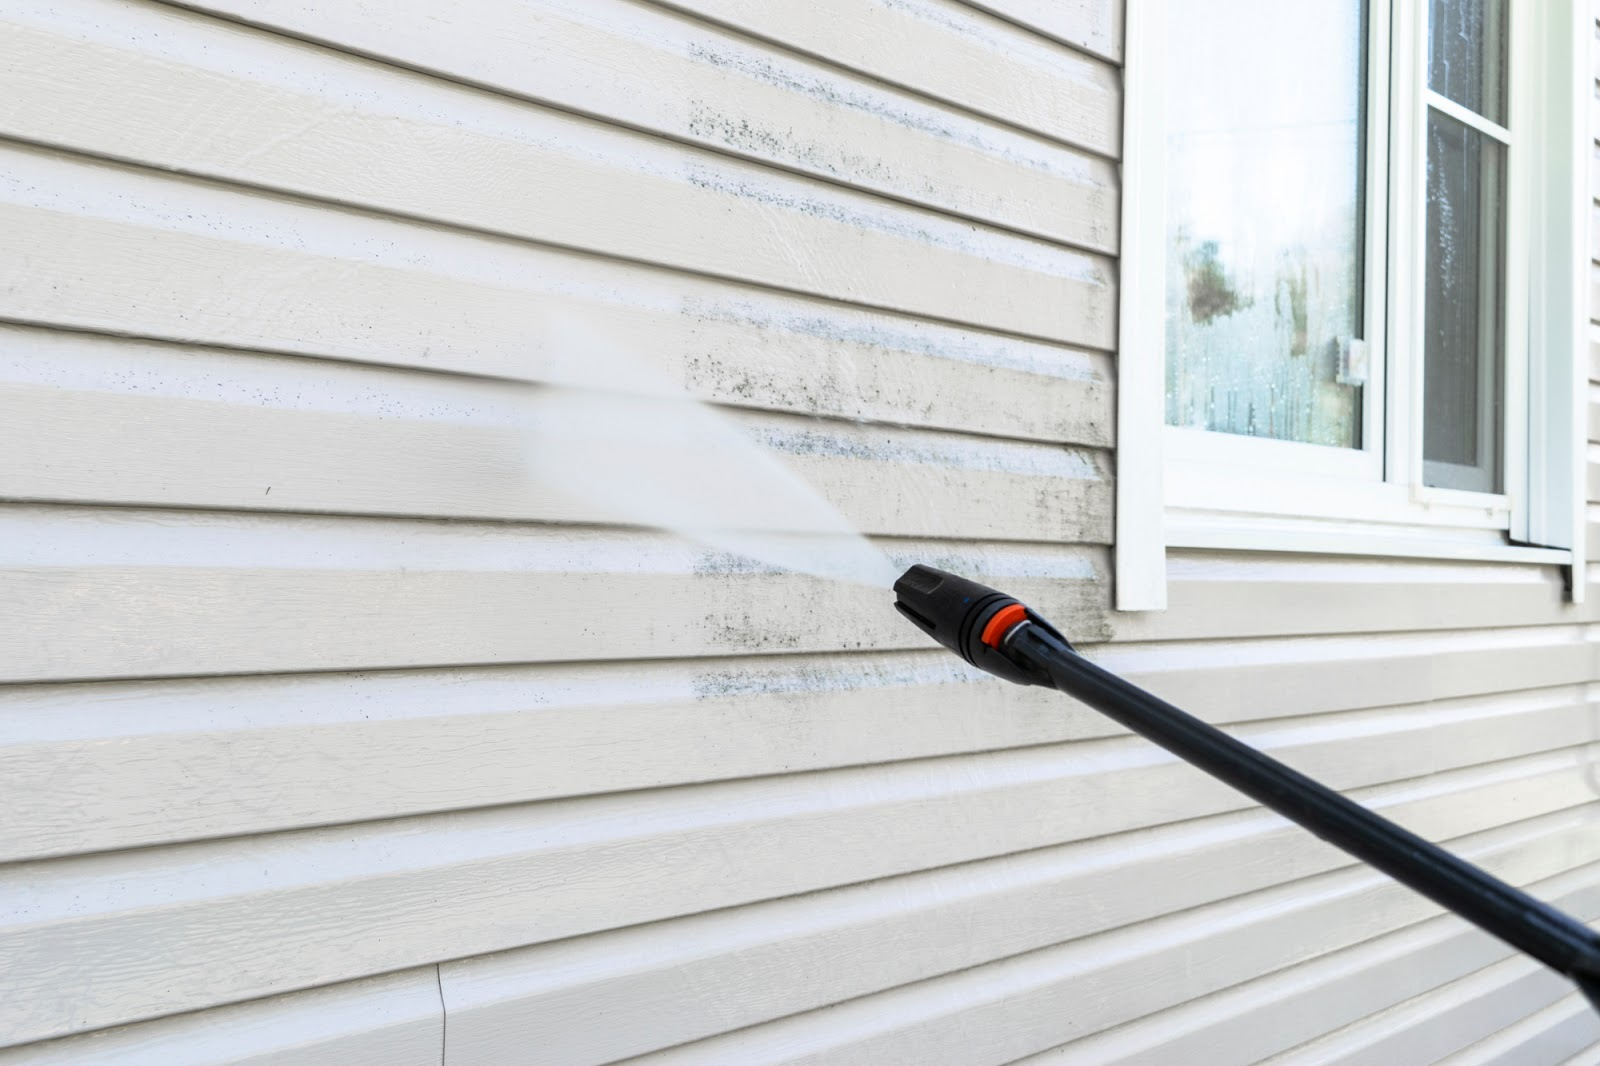 Power washer cleaning a home's siding